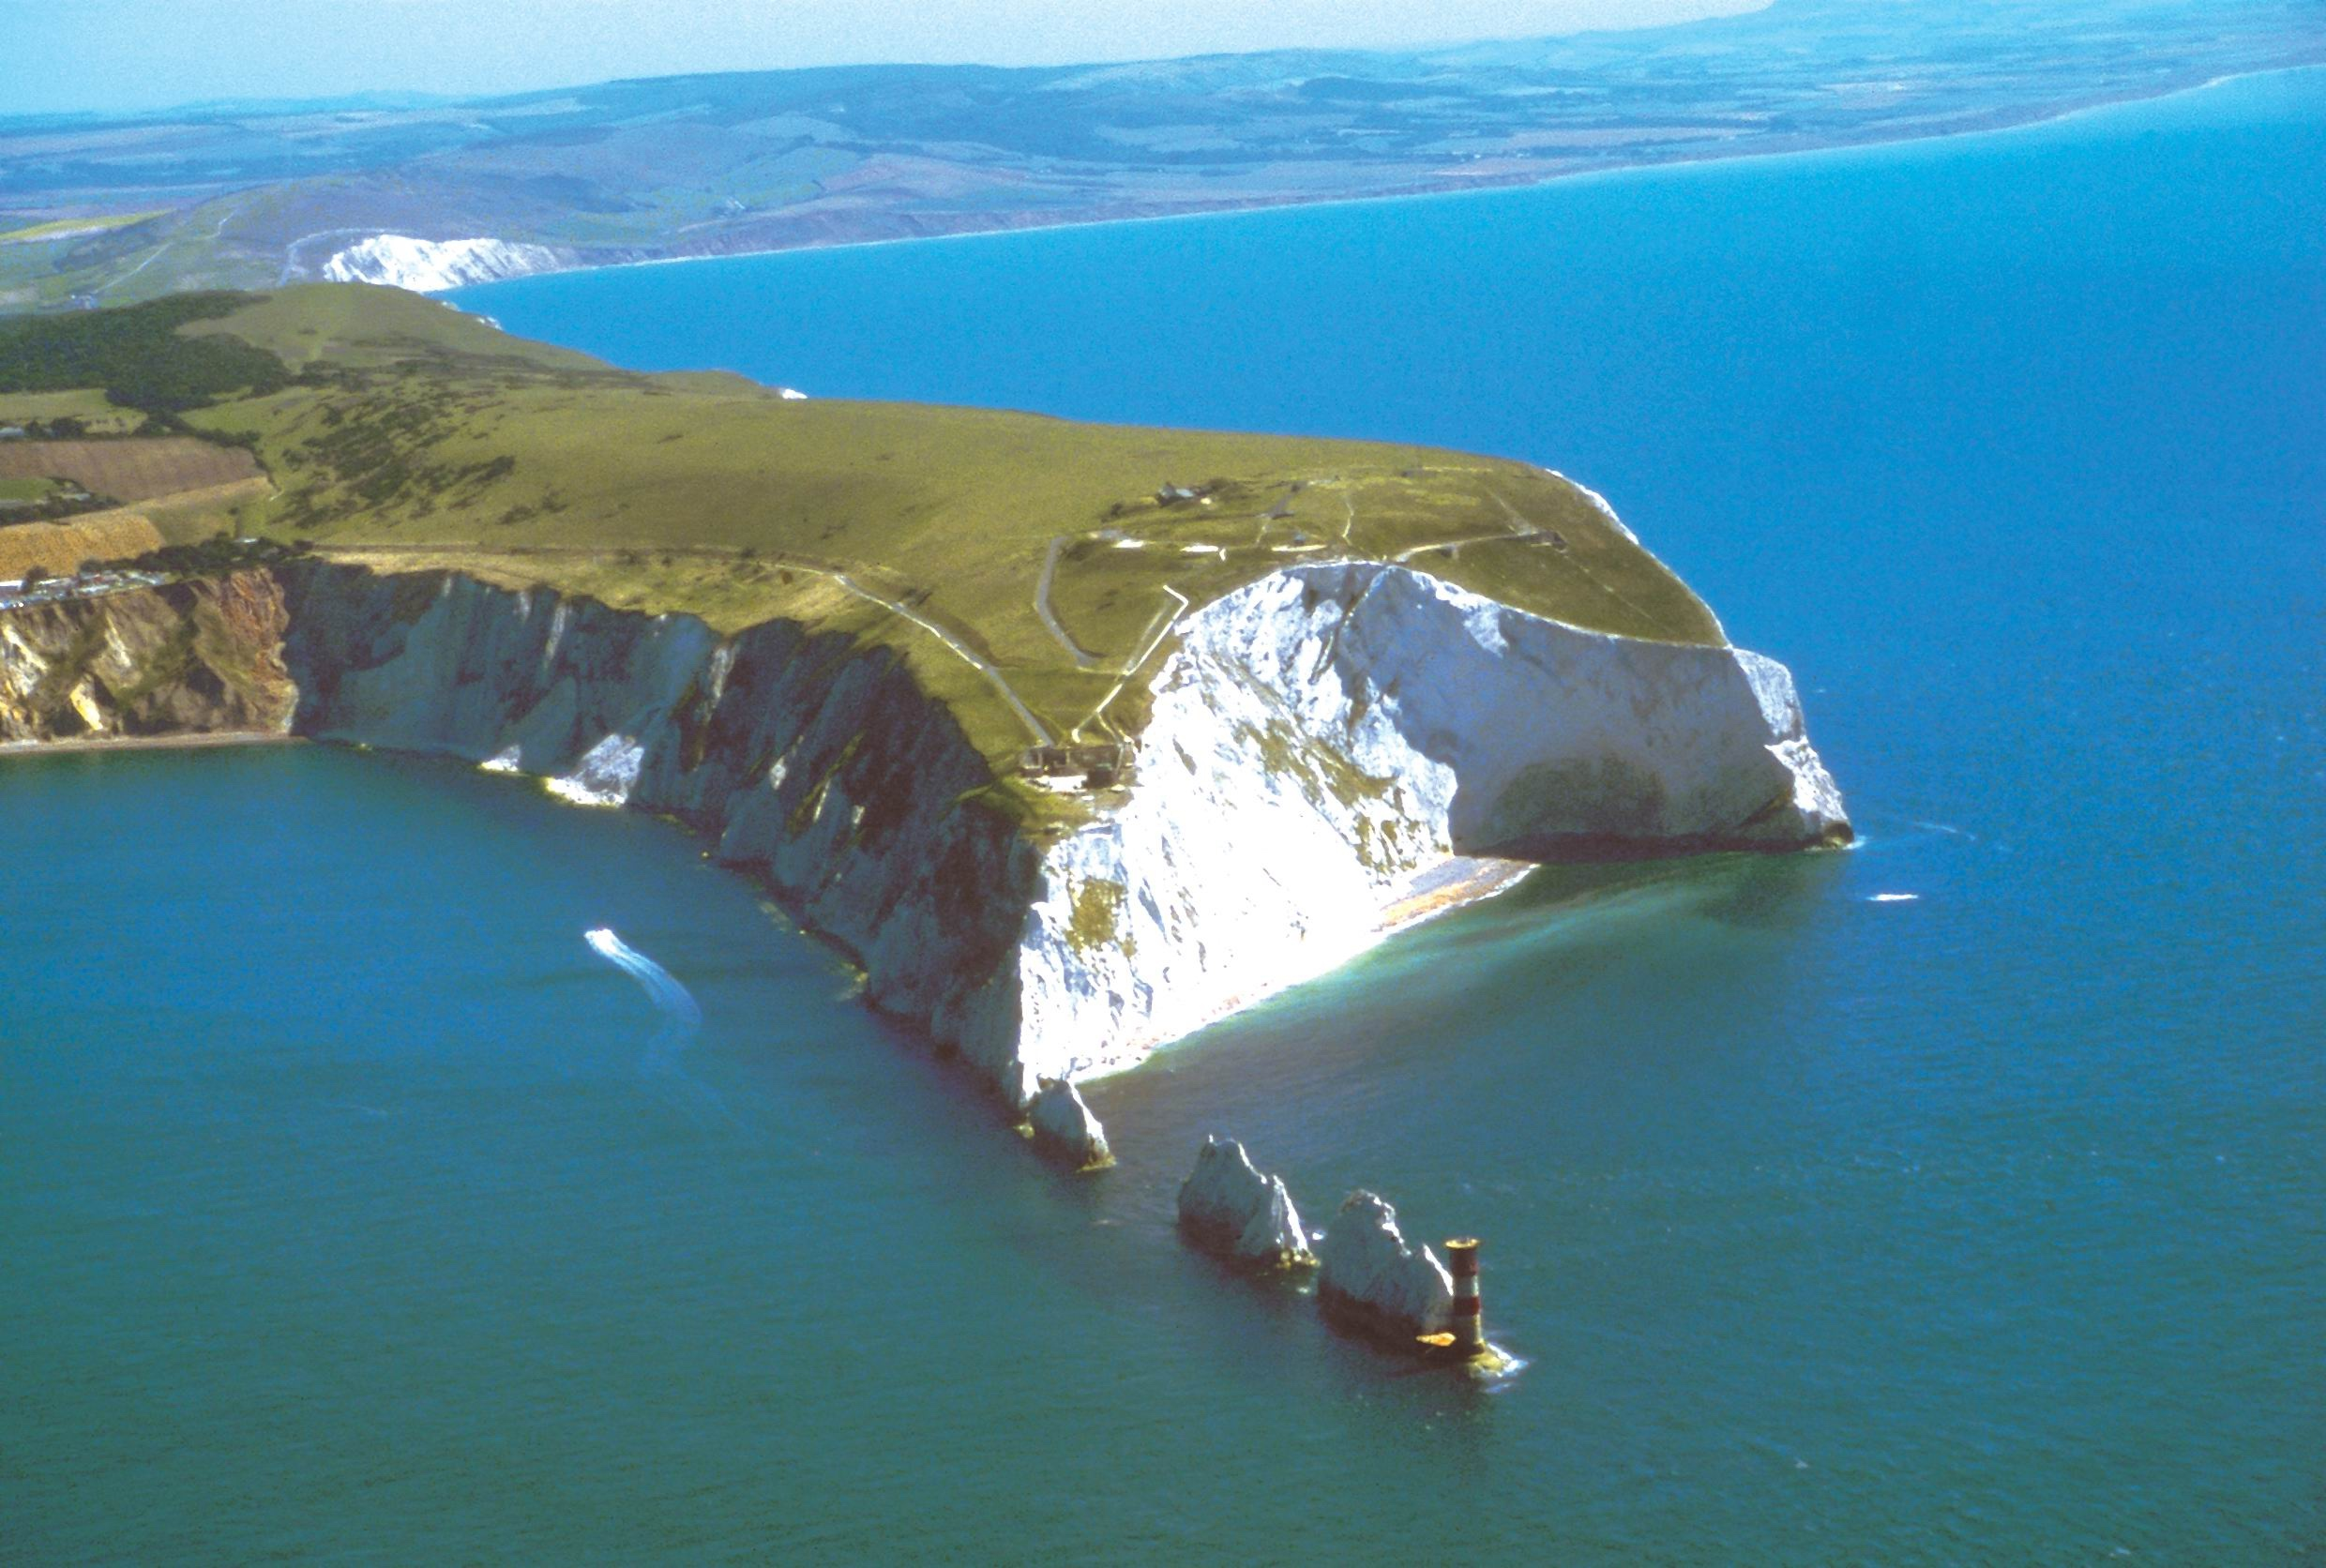 isle of wight Welcome to the isle of wight, our website offers quality information on attractions, accommodation, events and much more we are a community supported website and we highlight the most important things on the isle of wight.